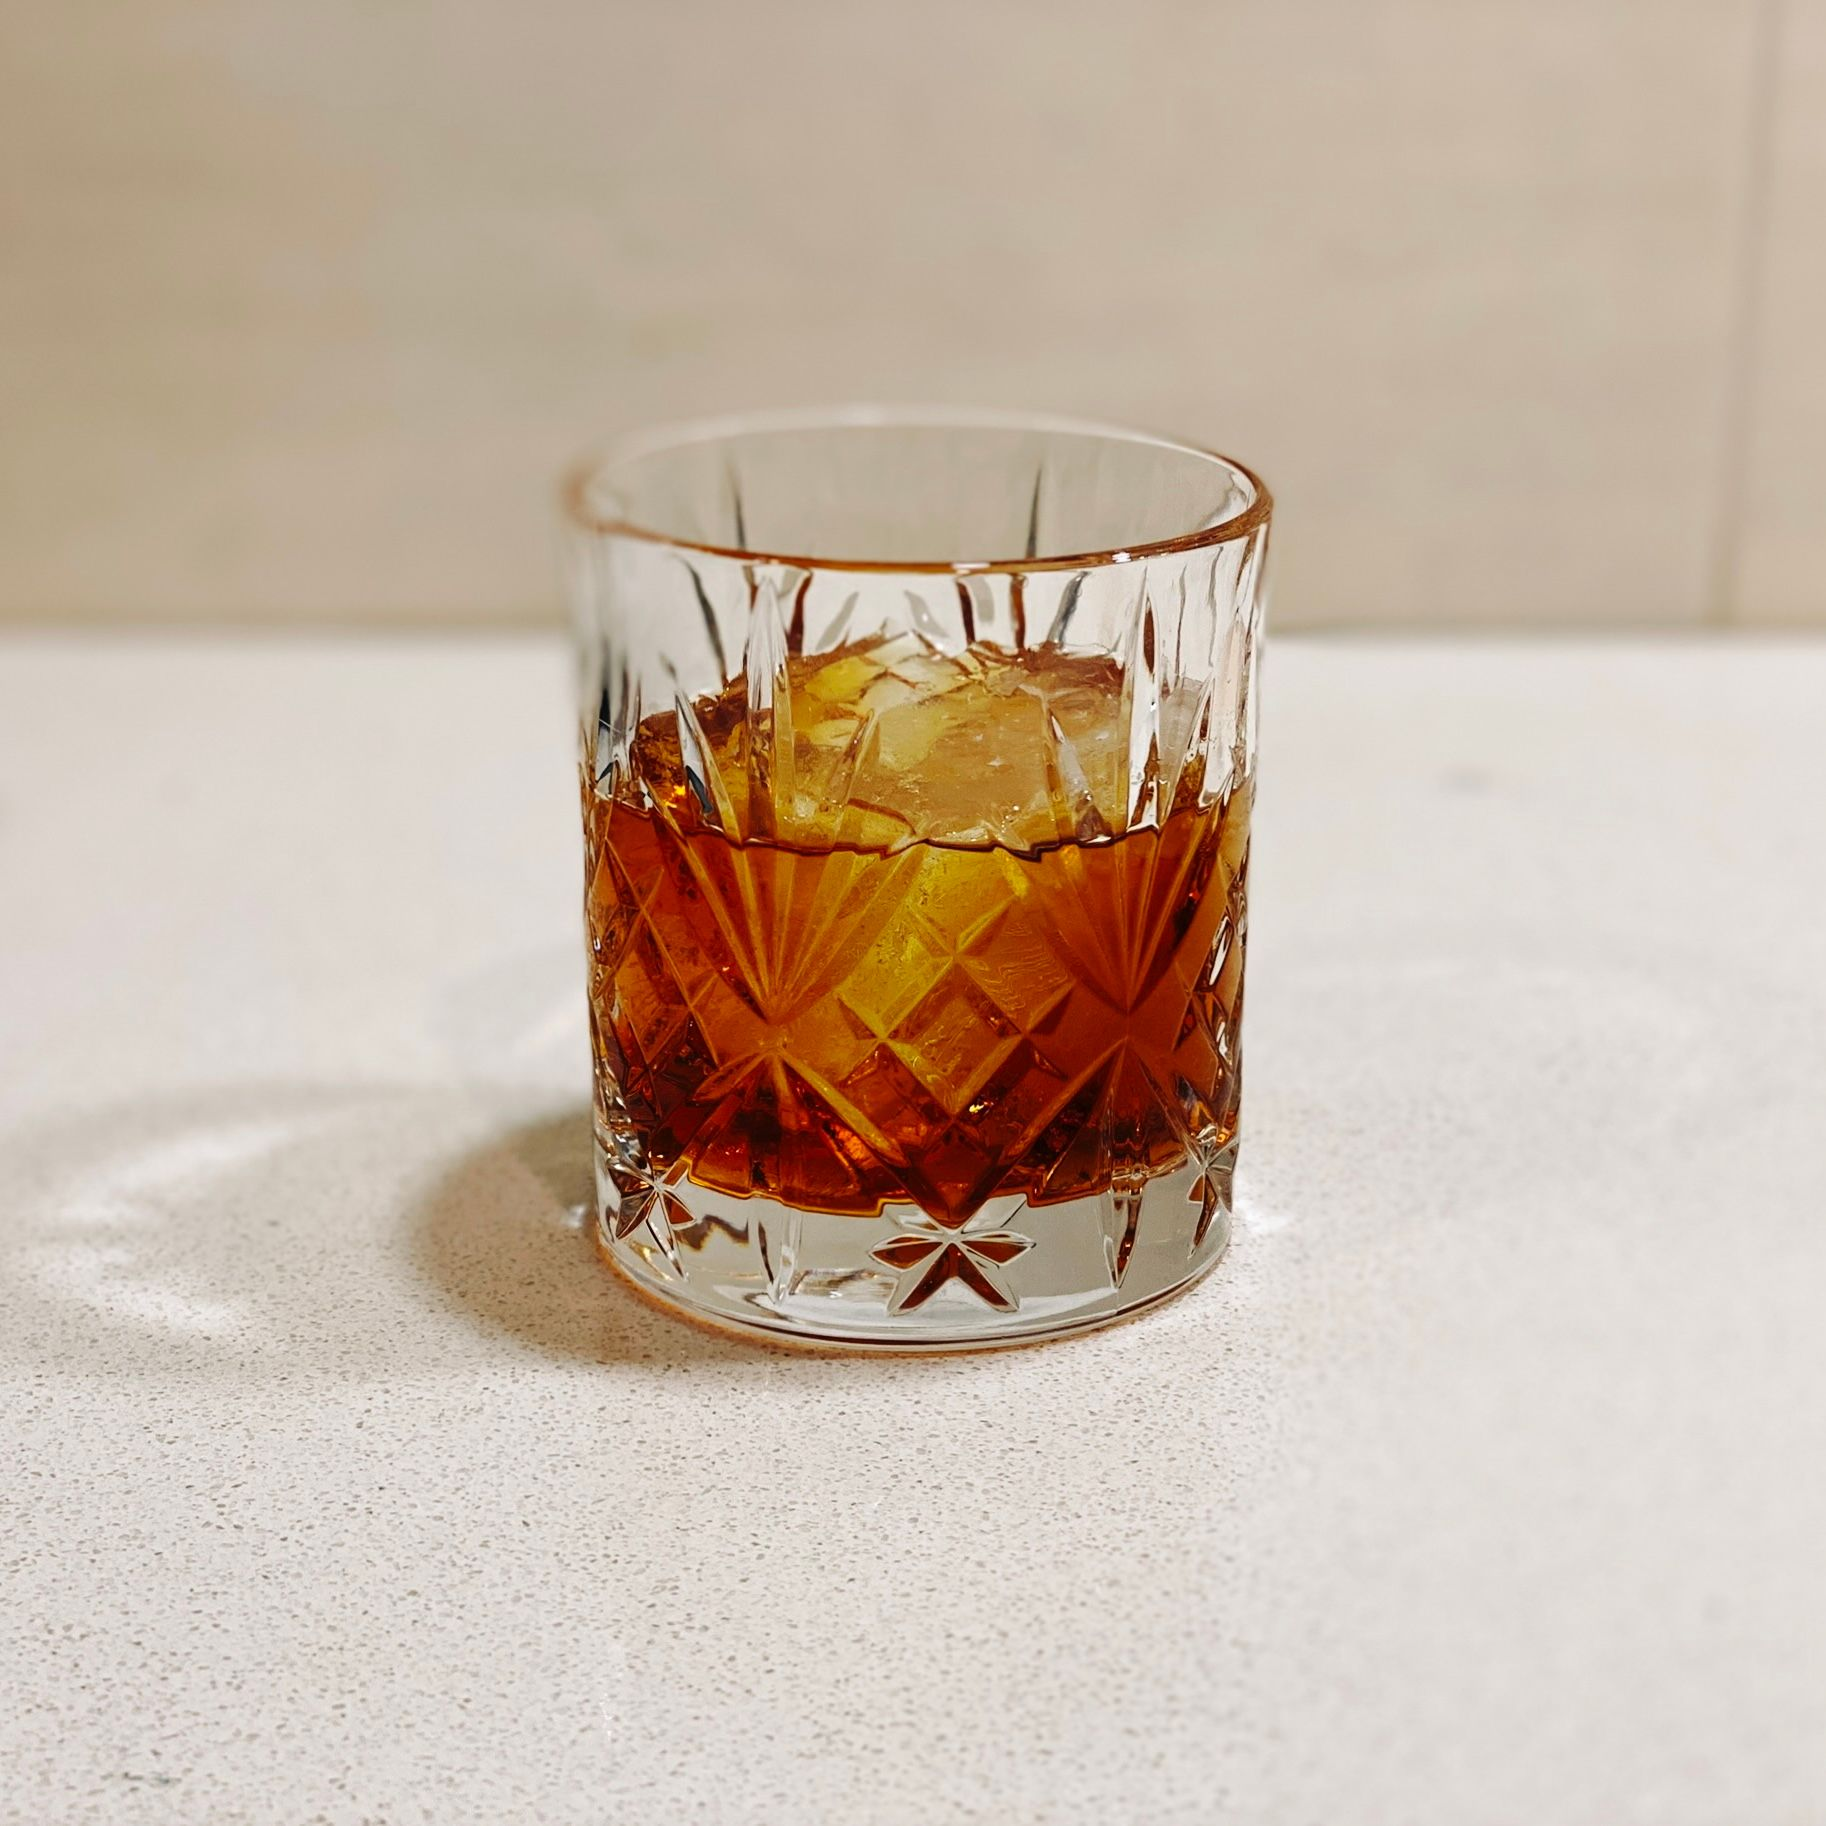 A photo of a small fancy glass with rum in it and a single big ice cube.